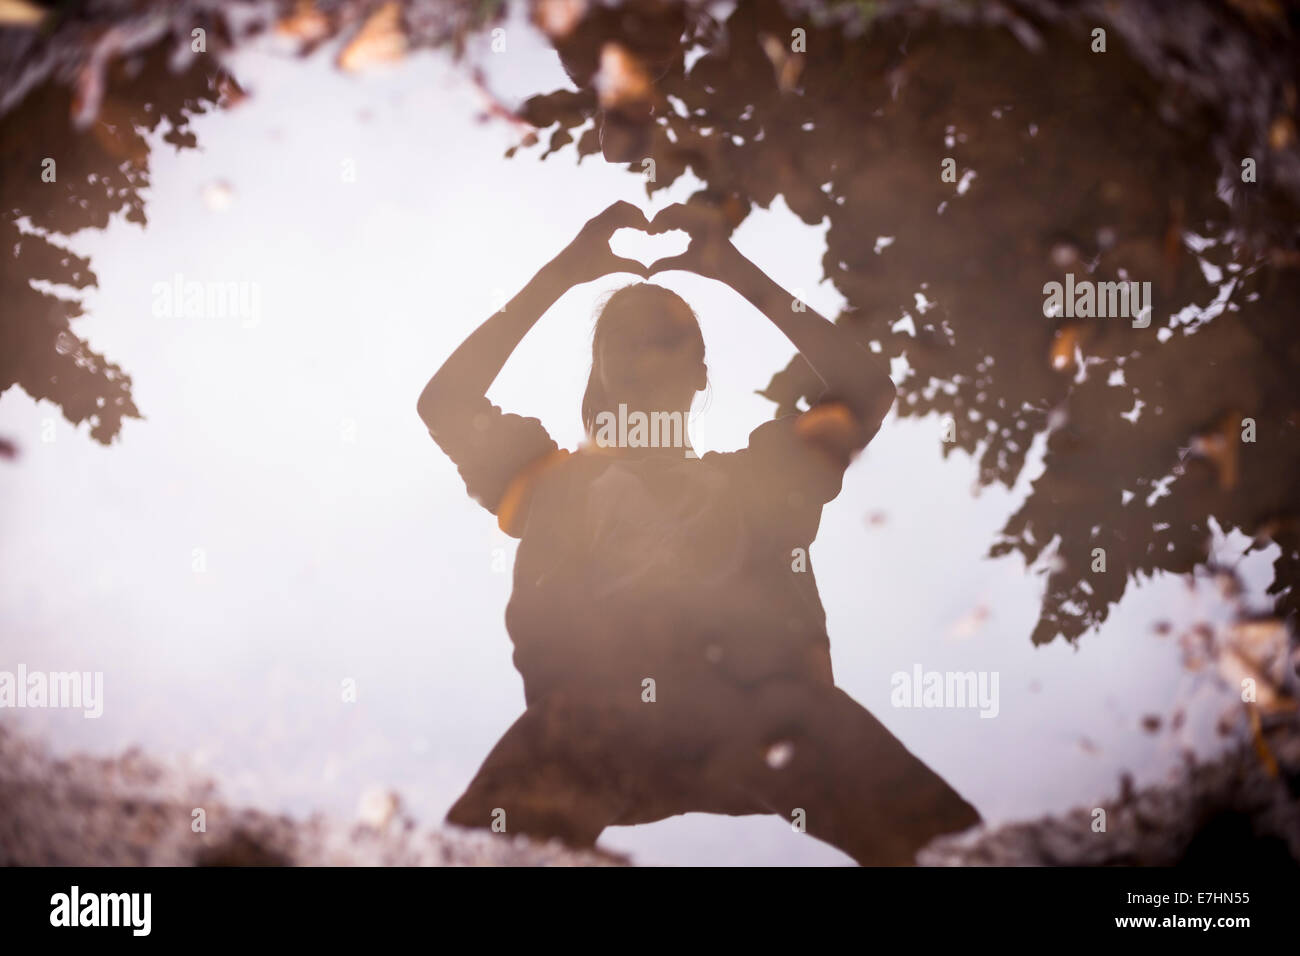 reflection in a puddle of a person who shapes a heart with his hands. - Stock Image